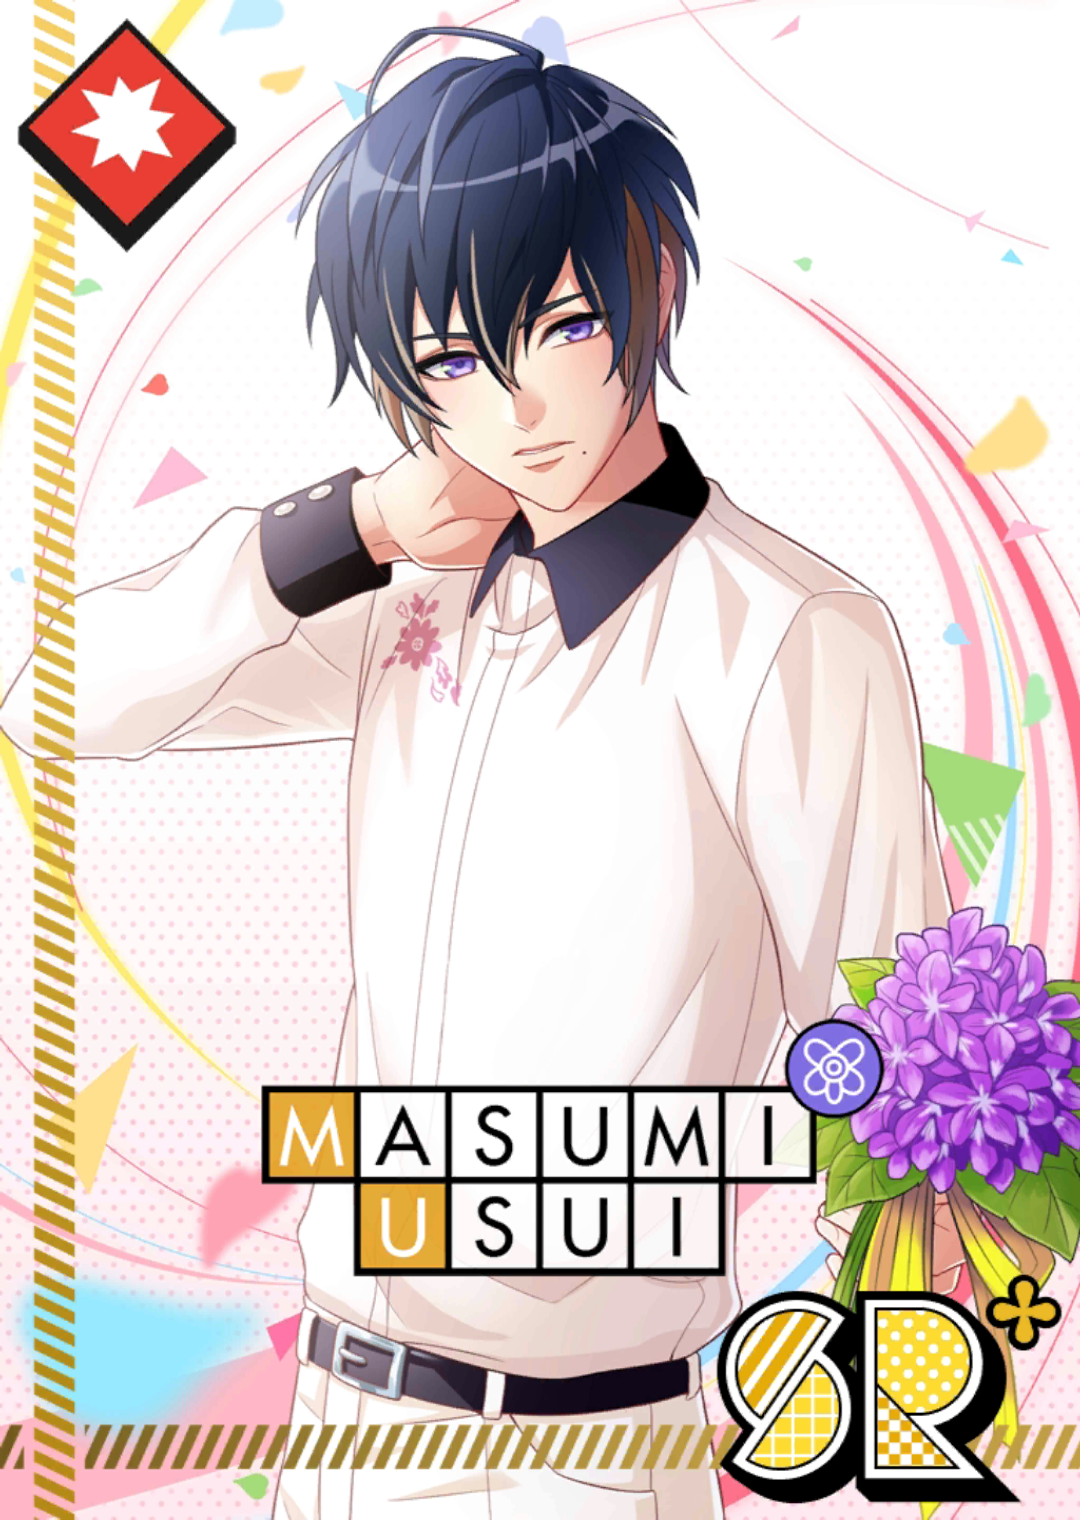 Masumi Usui SR About to Bloom bloomed.png